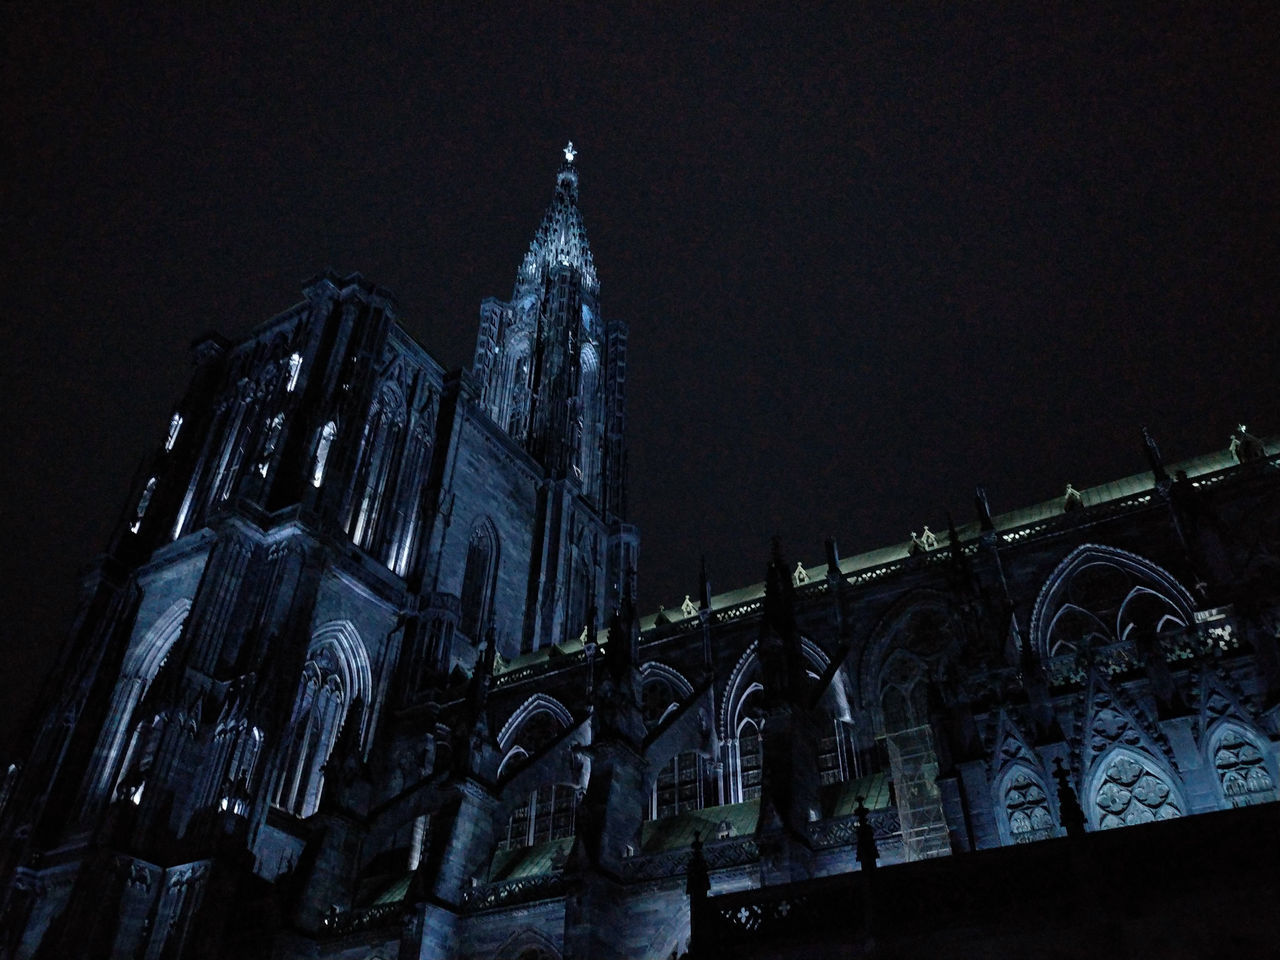 built structure, architecture, building exterior, night, building, religion, low angle view, belief, spirituality, place of worship, sky, no people, illuminated, history, the past, travel destinations, tourism, gothic style, spire